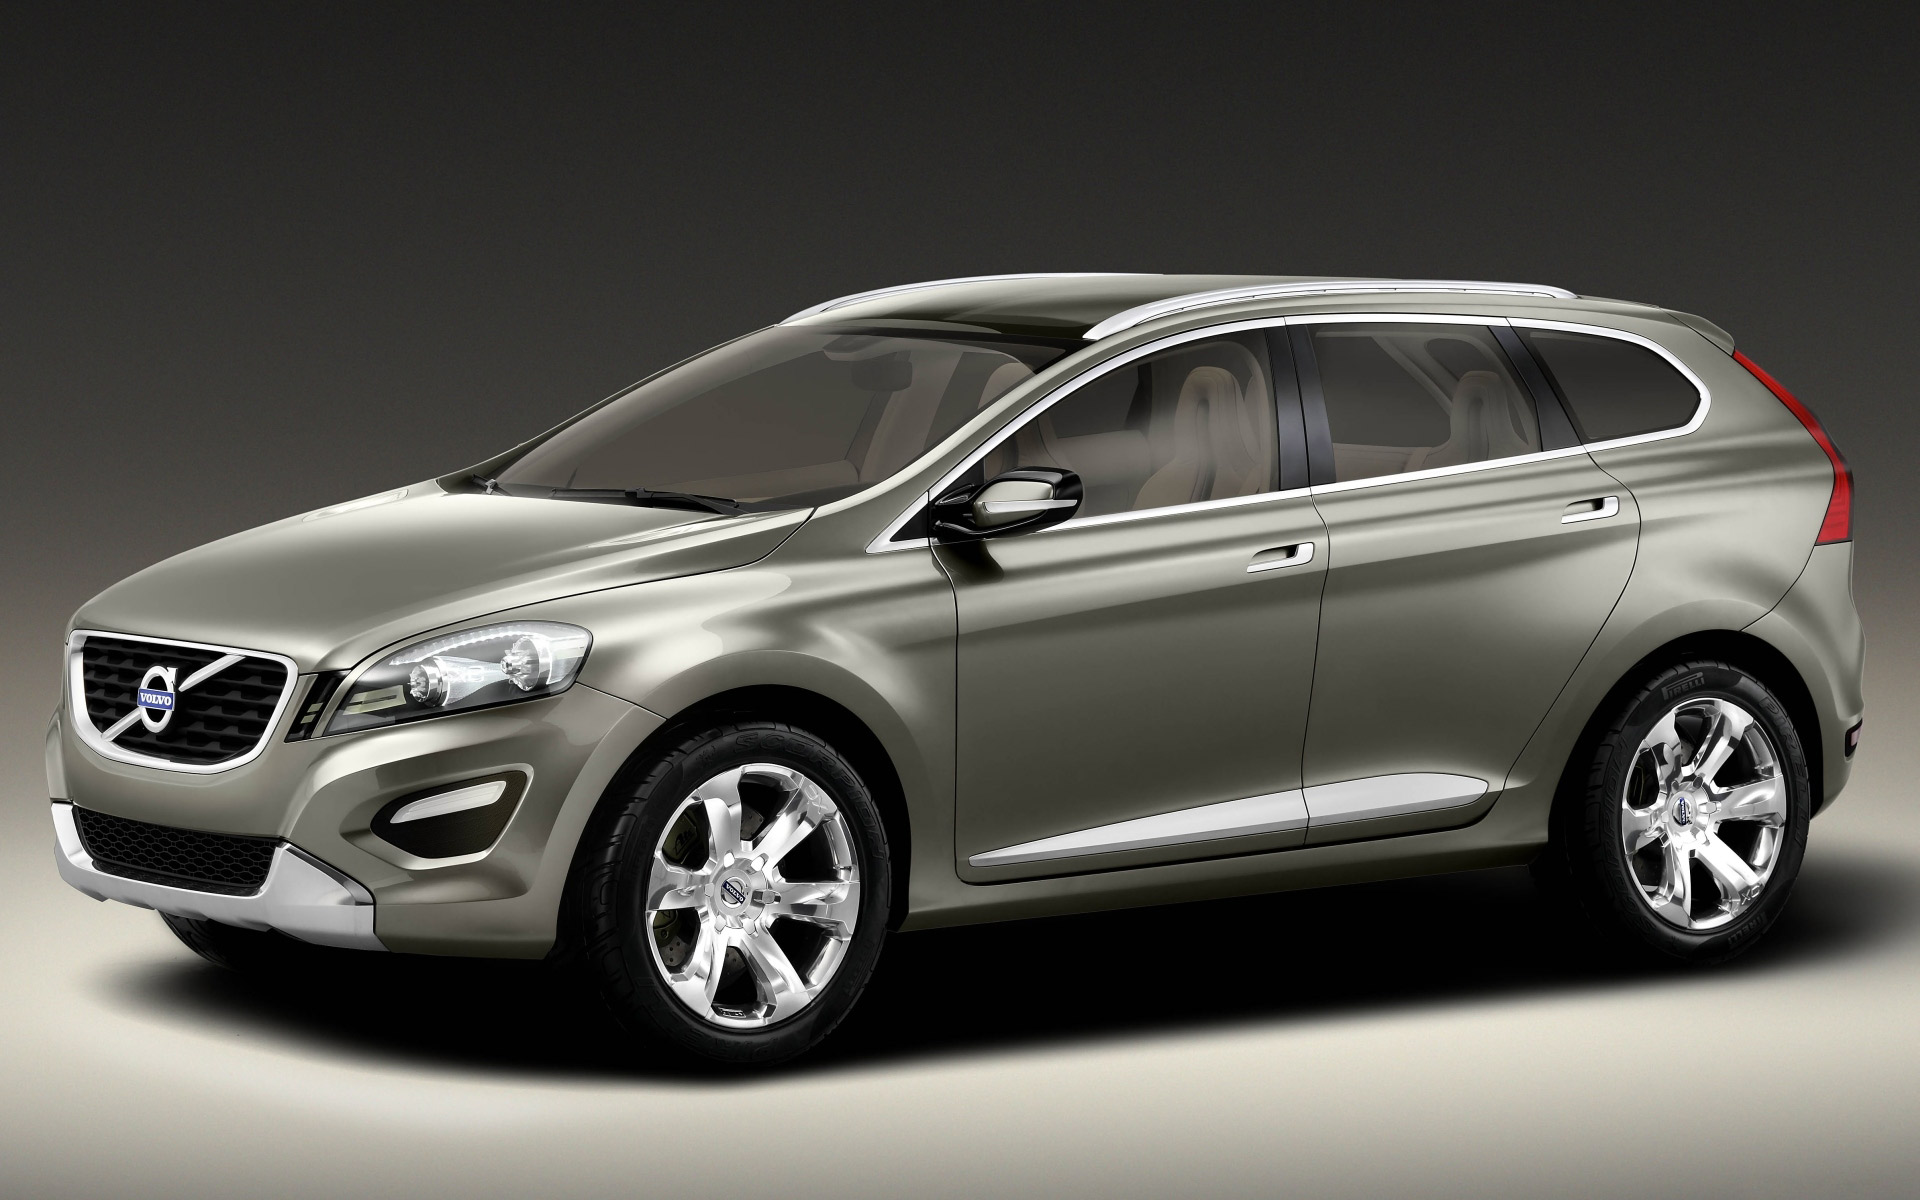 Volvo XC60 has been a great success and has won over 22 coveted awards Wallpapers Download